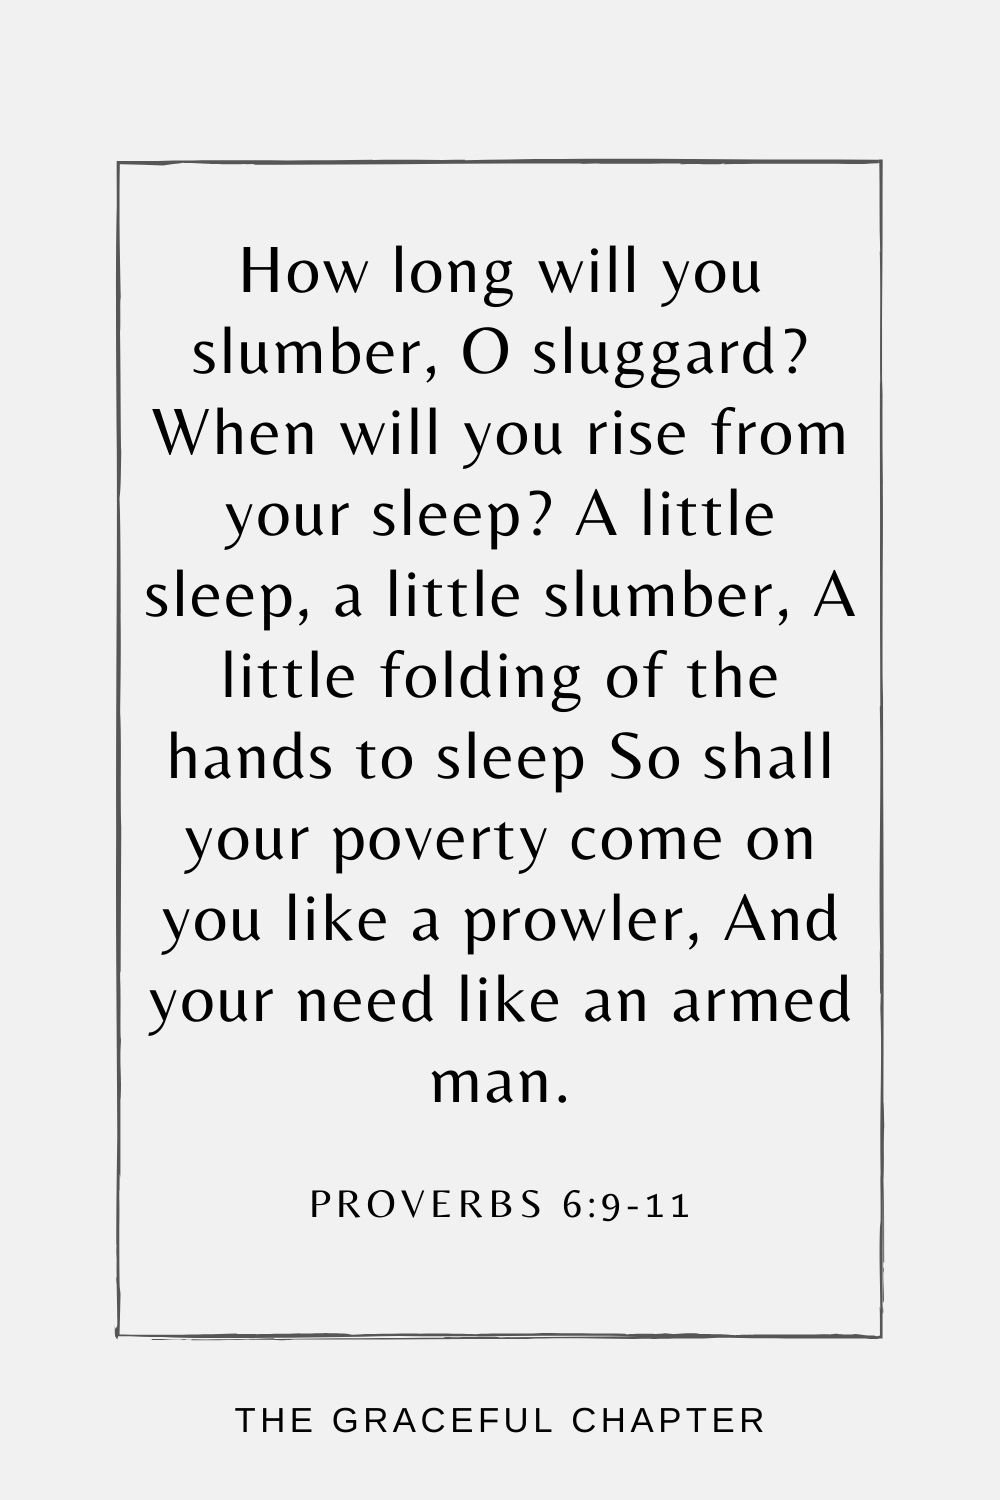 How long will you slumber, O sluggard? When will you rise from your sleep? A little sleep, a little slumber, A little folding of the hands to sleep So shall your poverty come on you like a prowler, And your need like an armed man. Proverbs 6:9-11